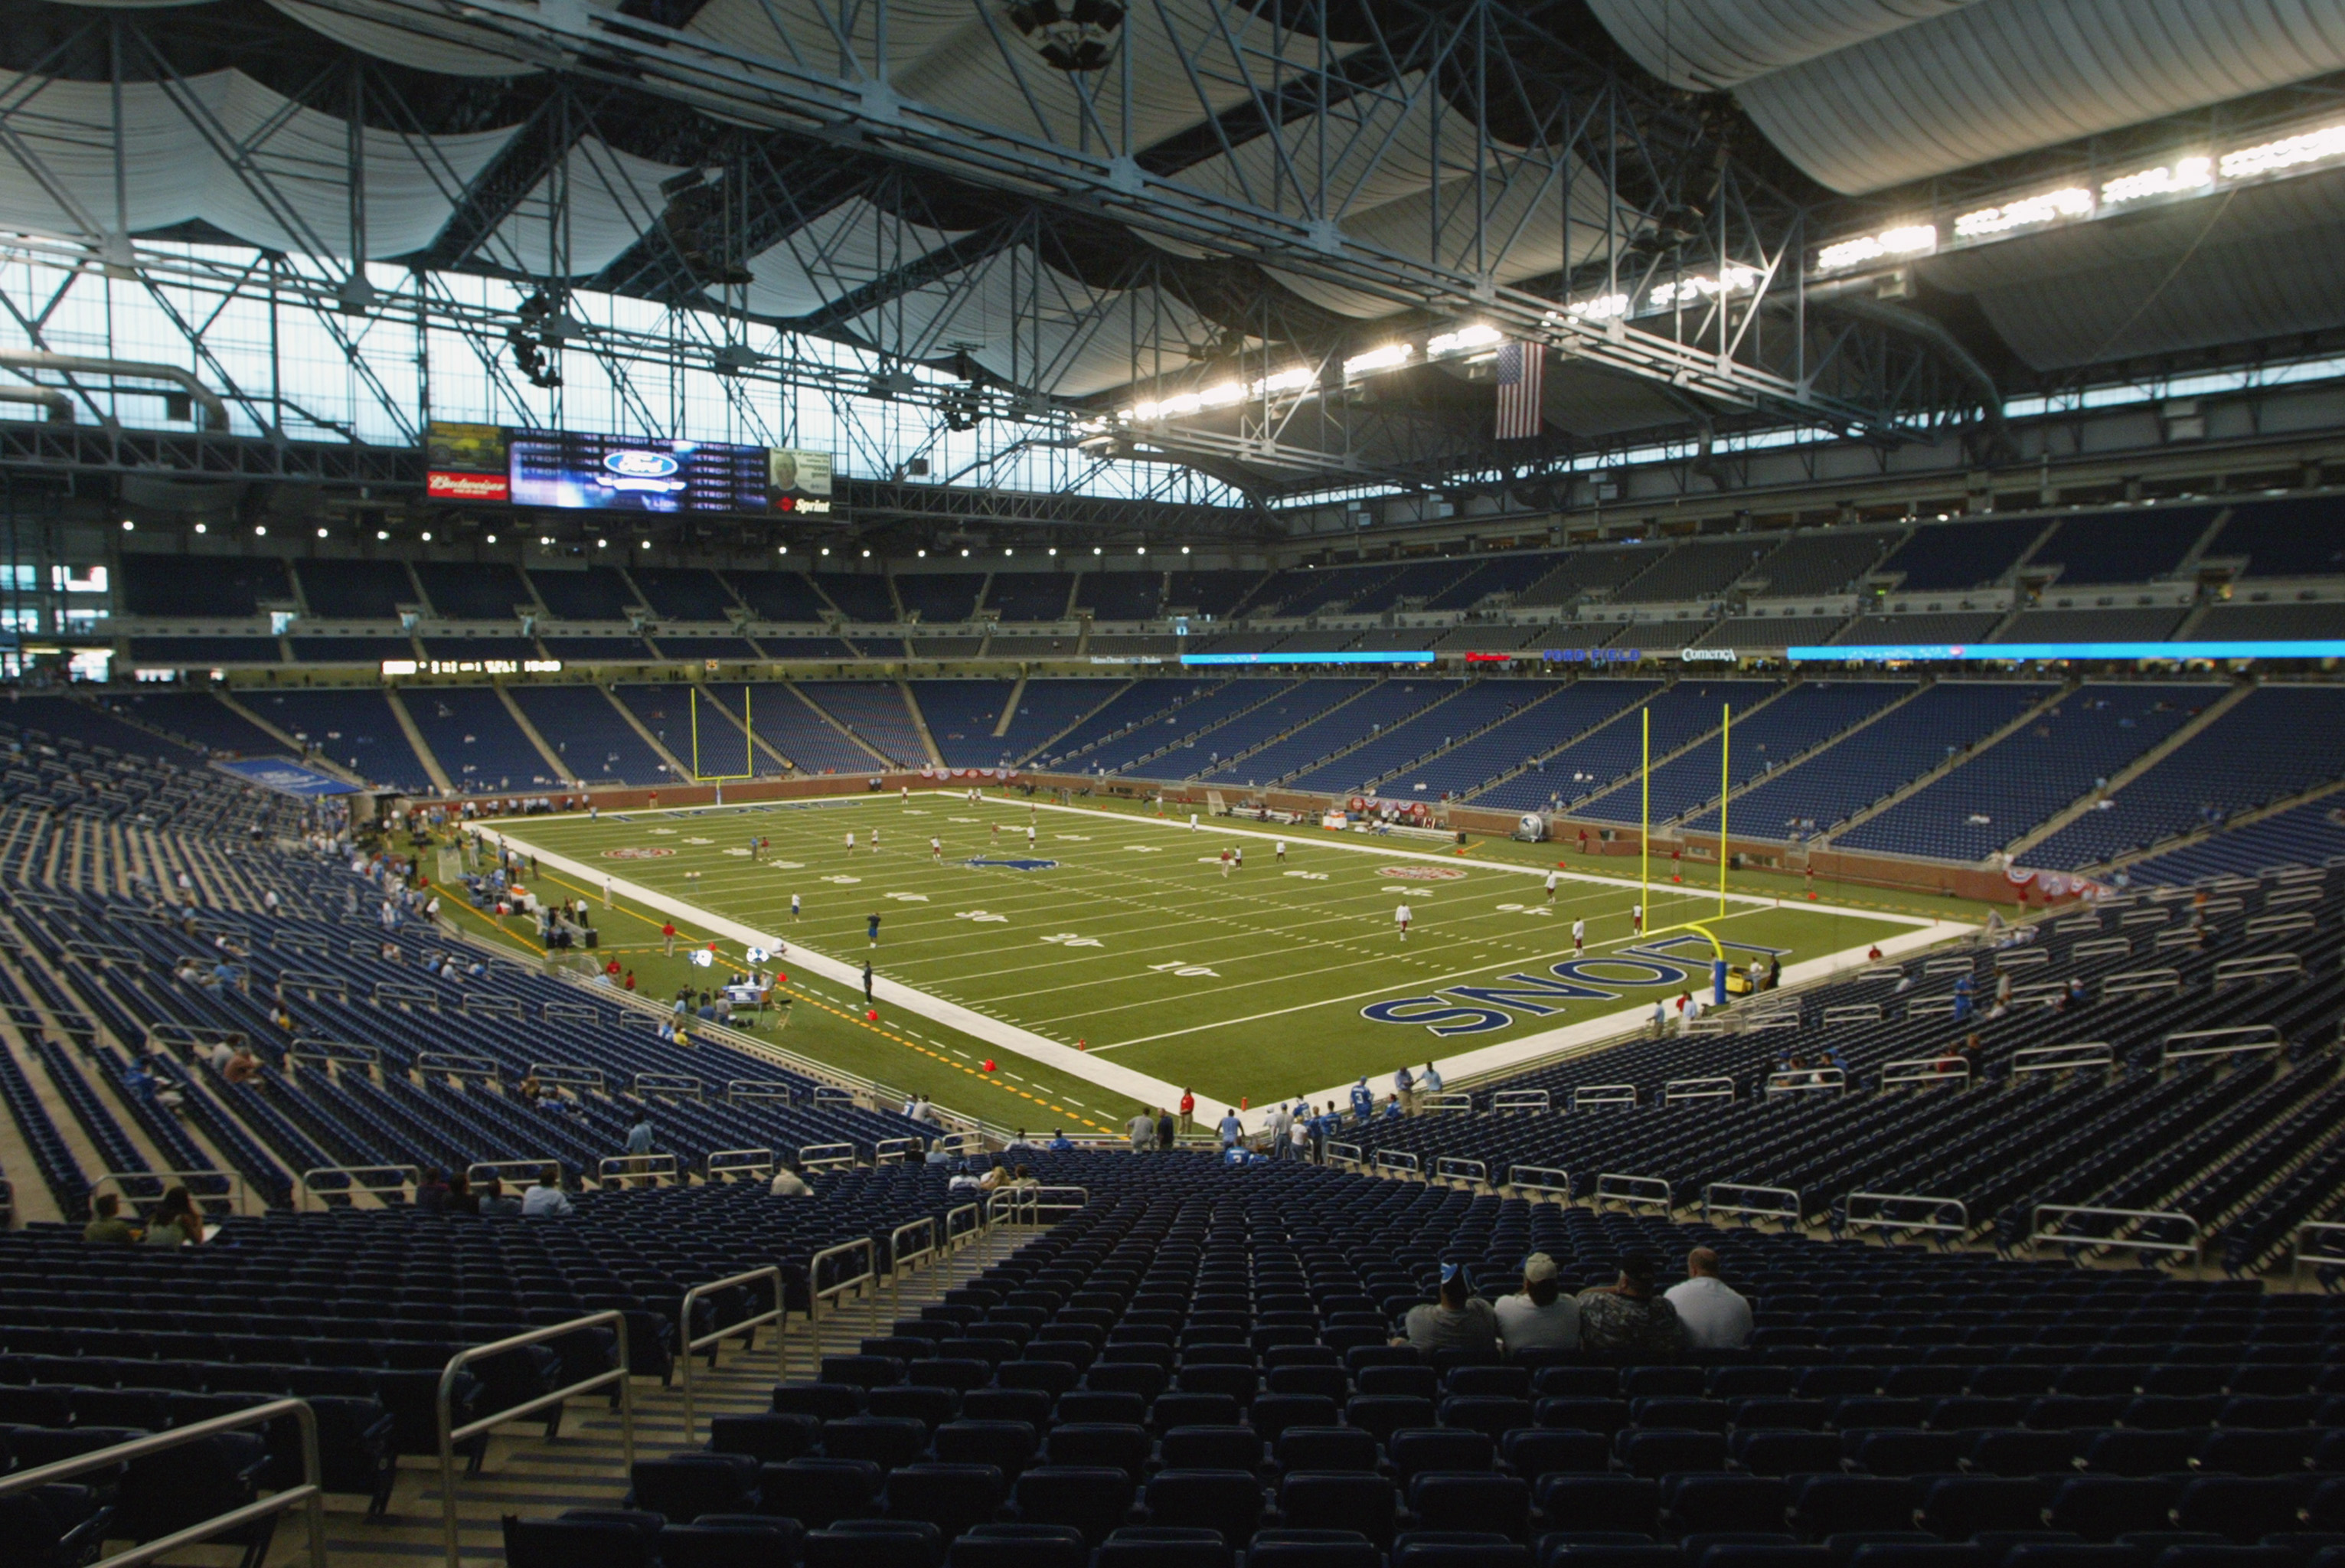 The indoor stadium opened in 2002, replacing the Pontiac Silverdome as the home of the Detroit Lions.